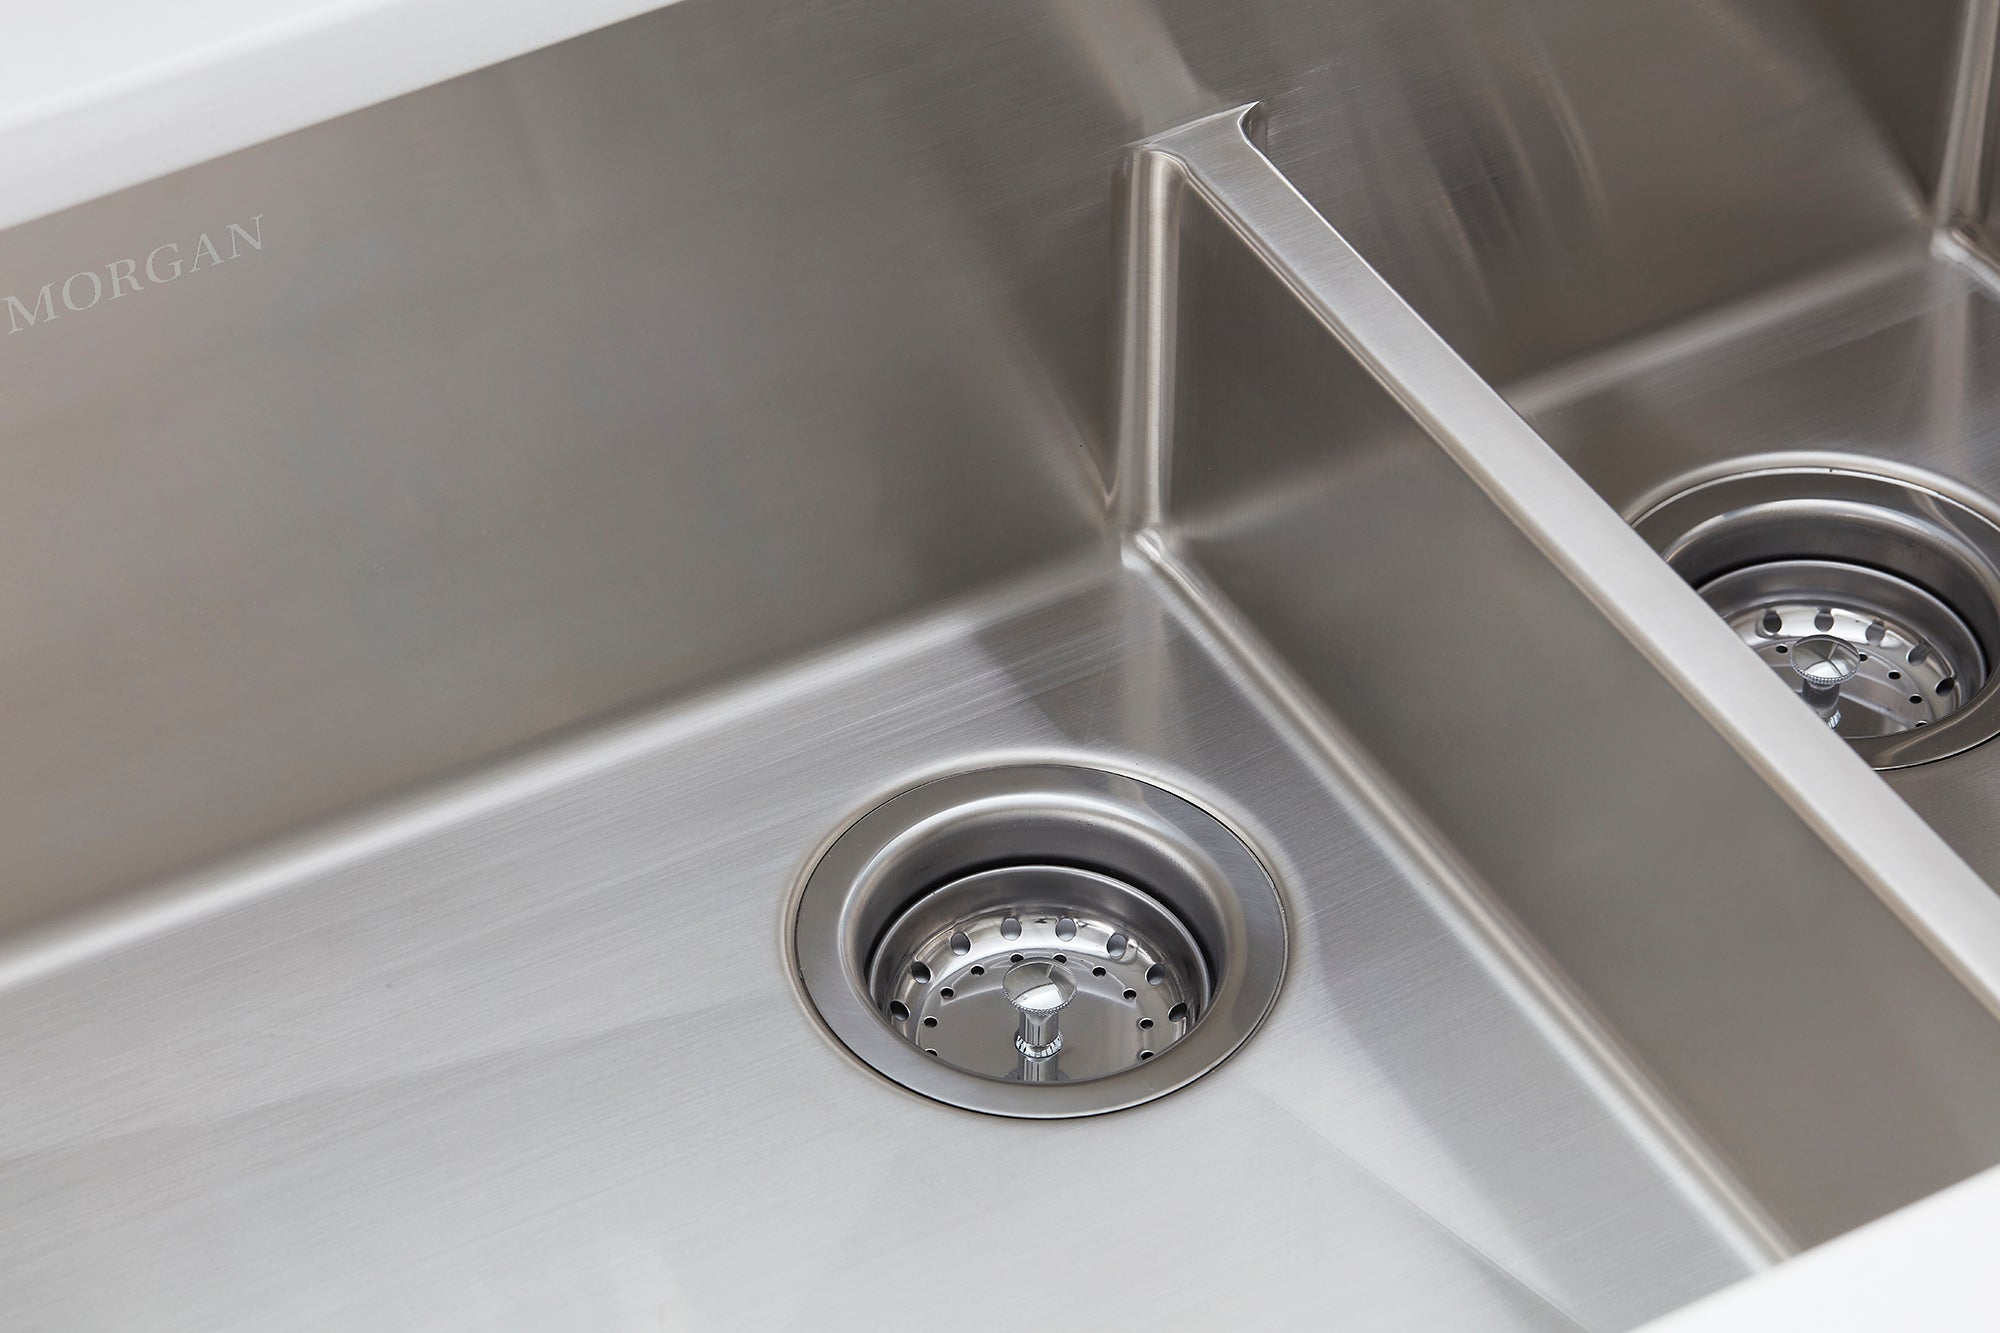 Morgan Tap and Basin Double Bowl Undermount Sink Offset Drain Close-up